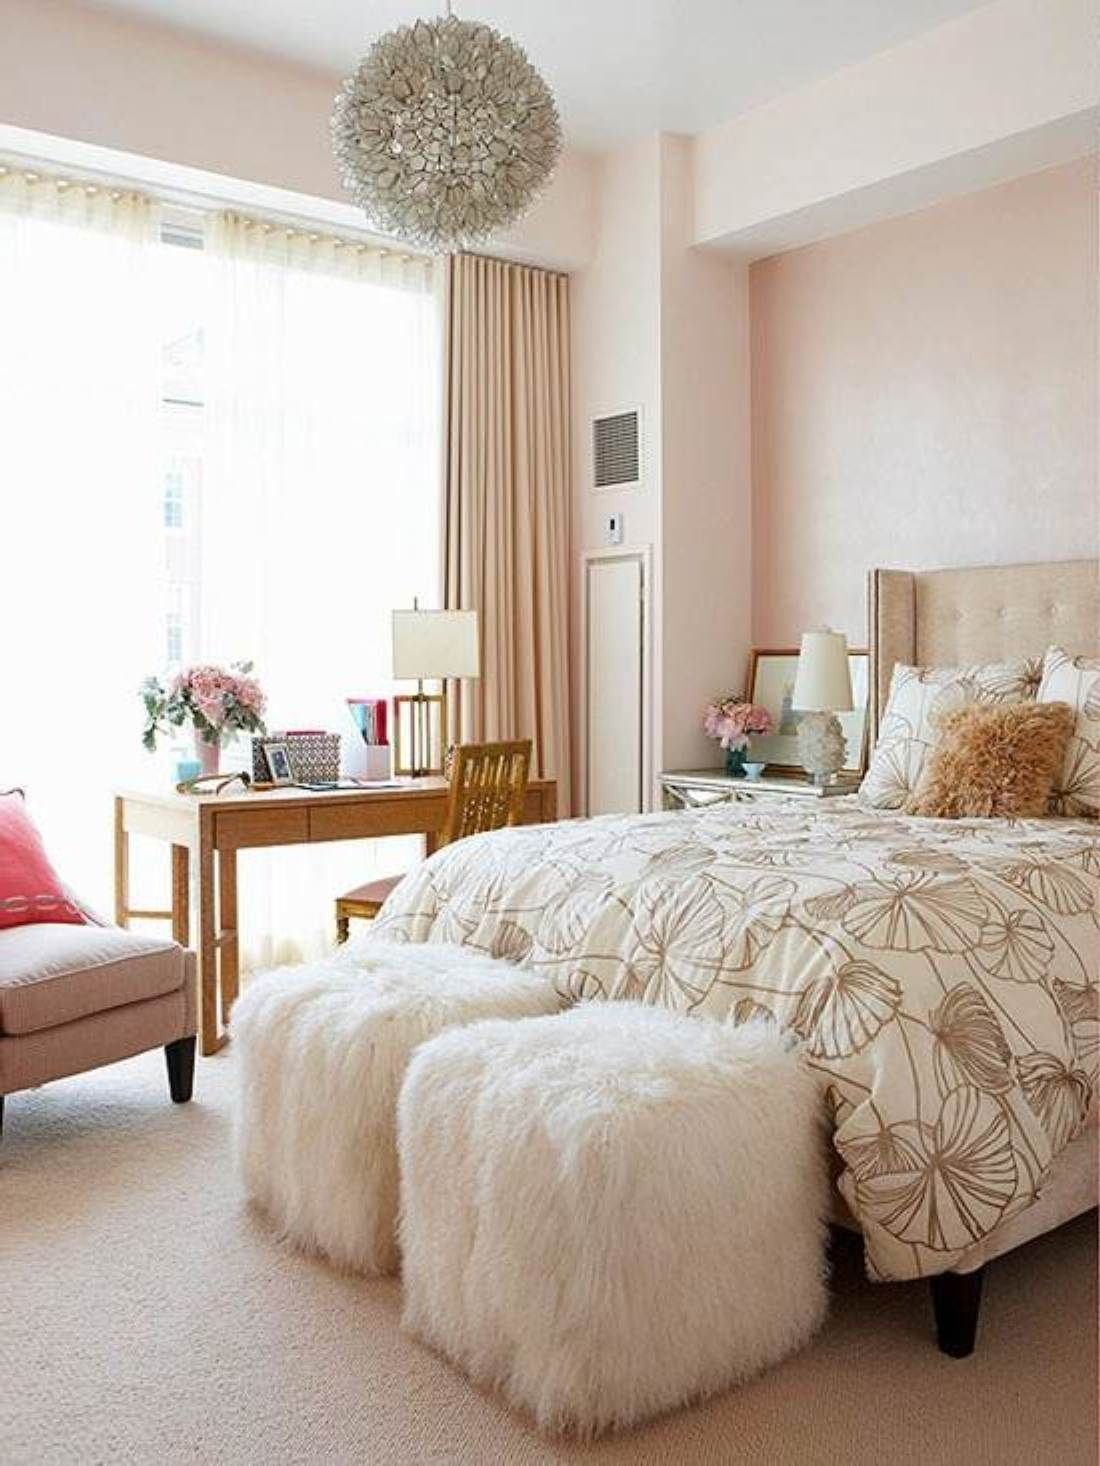 Charmant The Bedroom Designs For Women Are Chic, Elegant And Mostly According Their  Personality. If